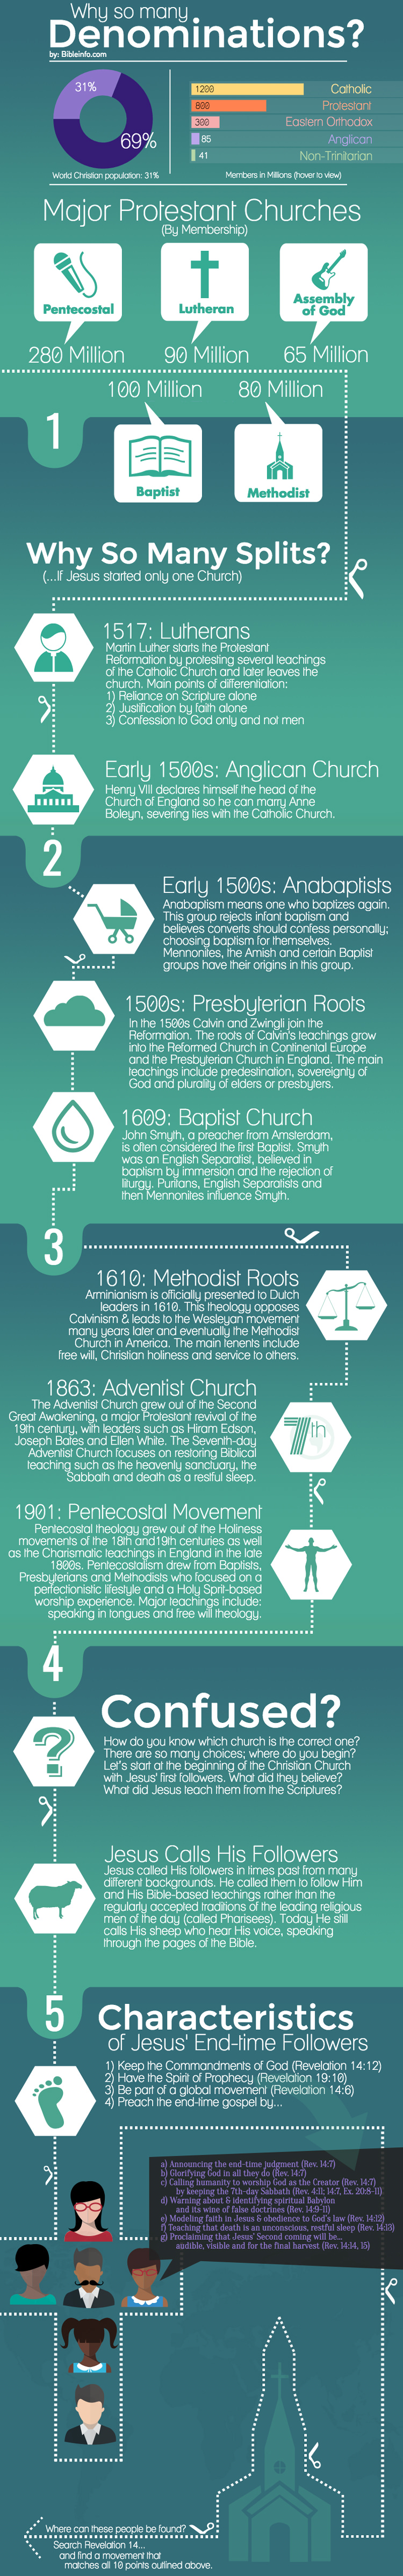 Infographic - why so many denominations?